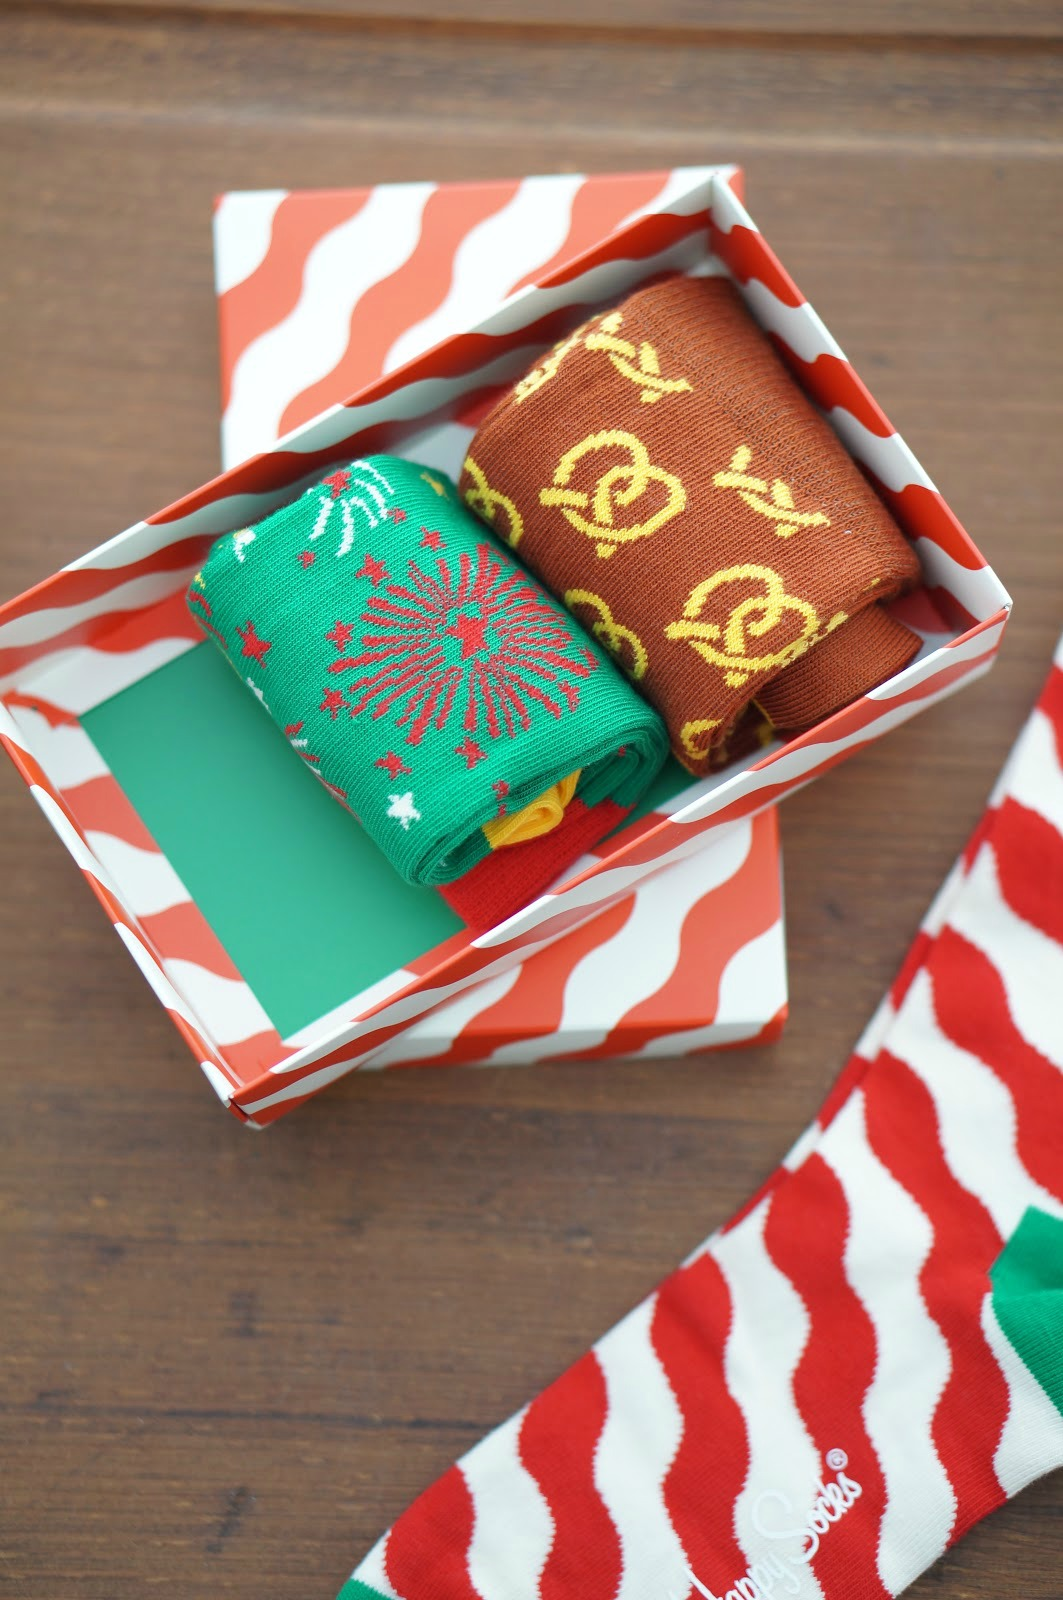 Rebecca Lately Happy Socks #happysocks #happinesseverywhere Christmas Socks Box Set